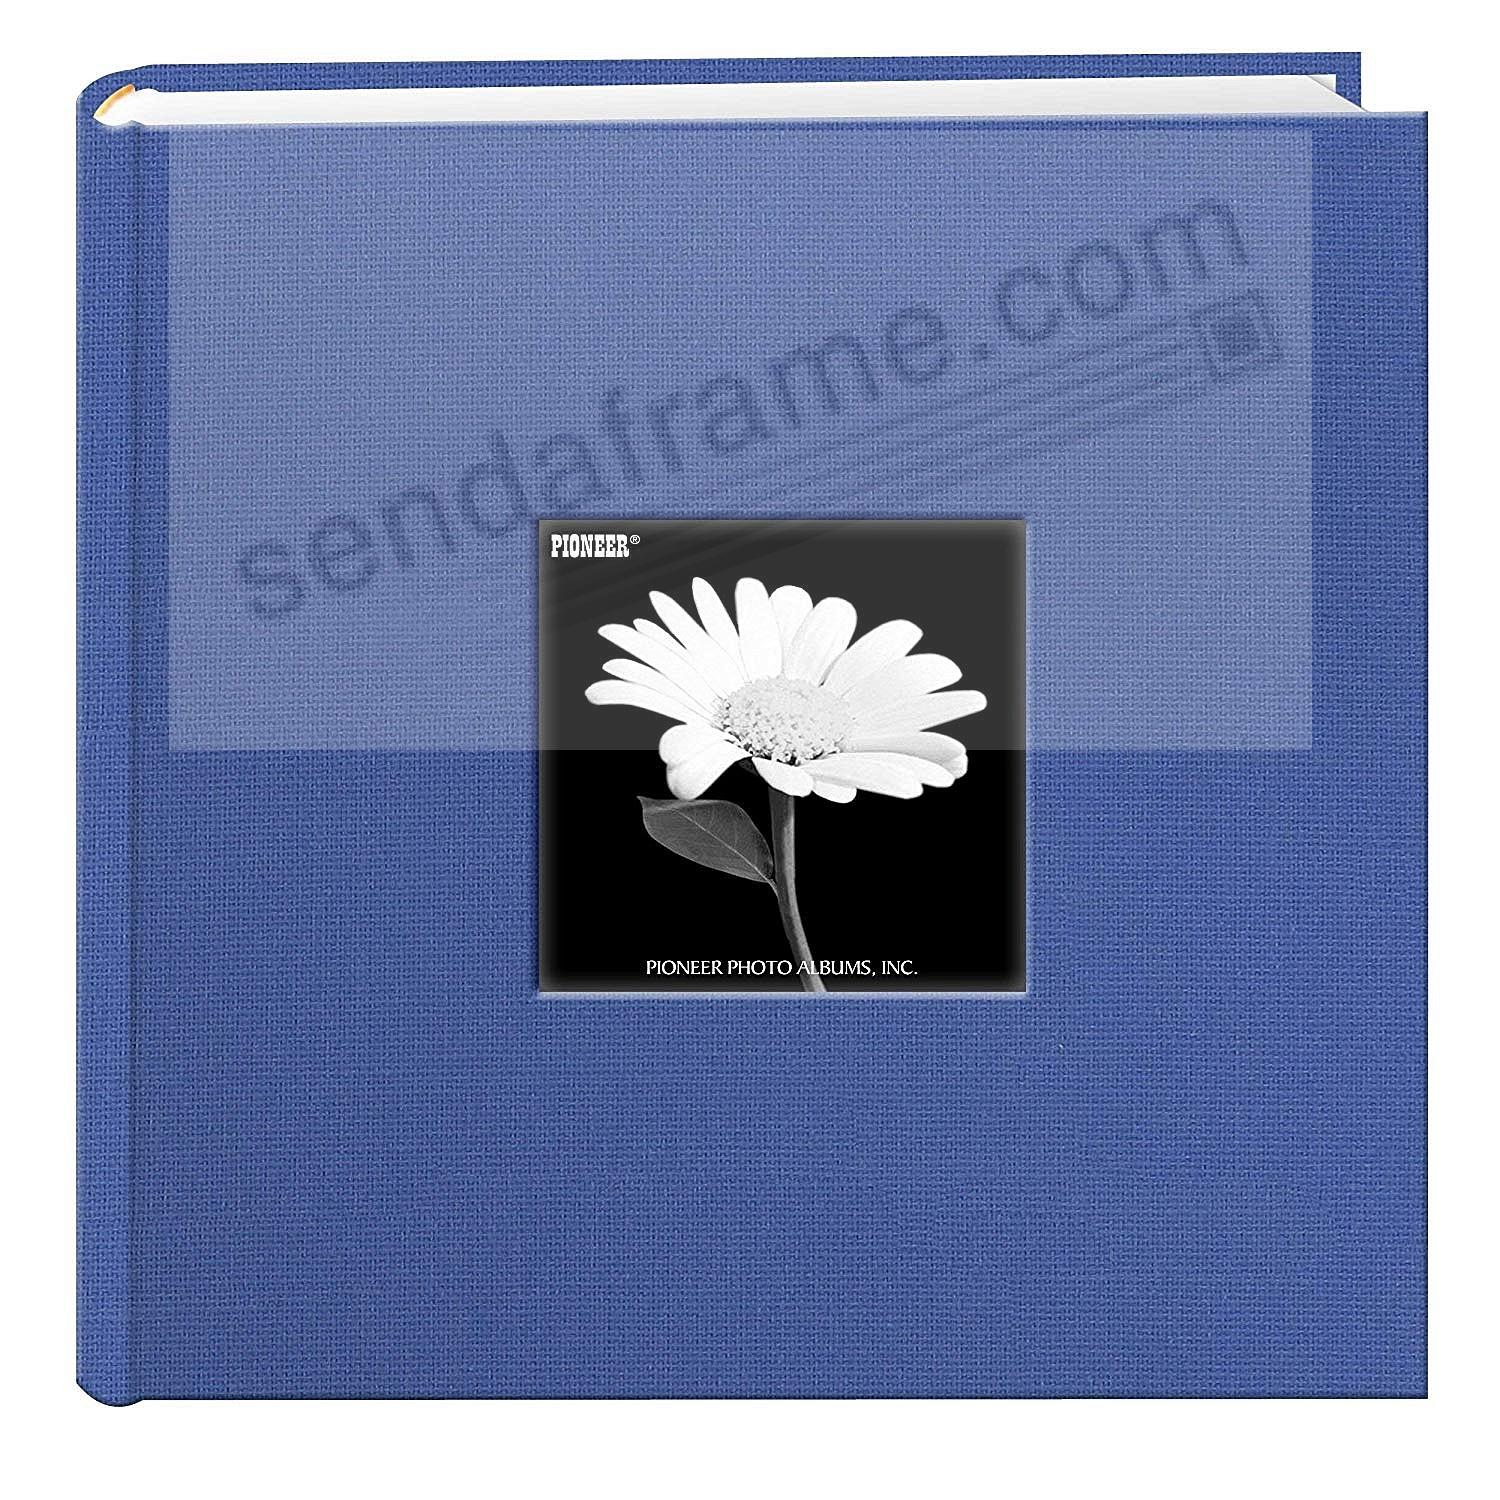 Sky-Blue cloth 2-up frame photo album by Pioneer®